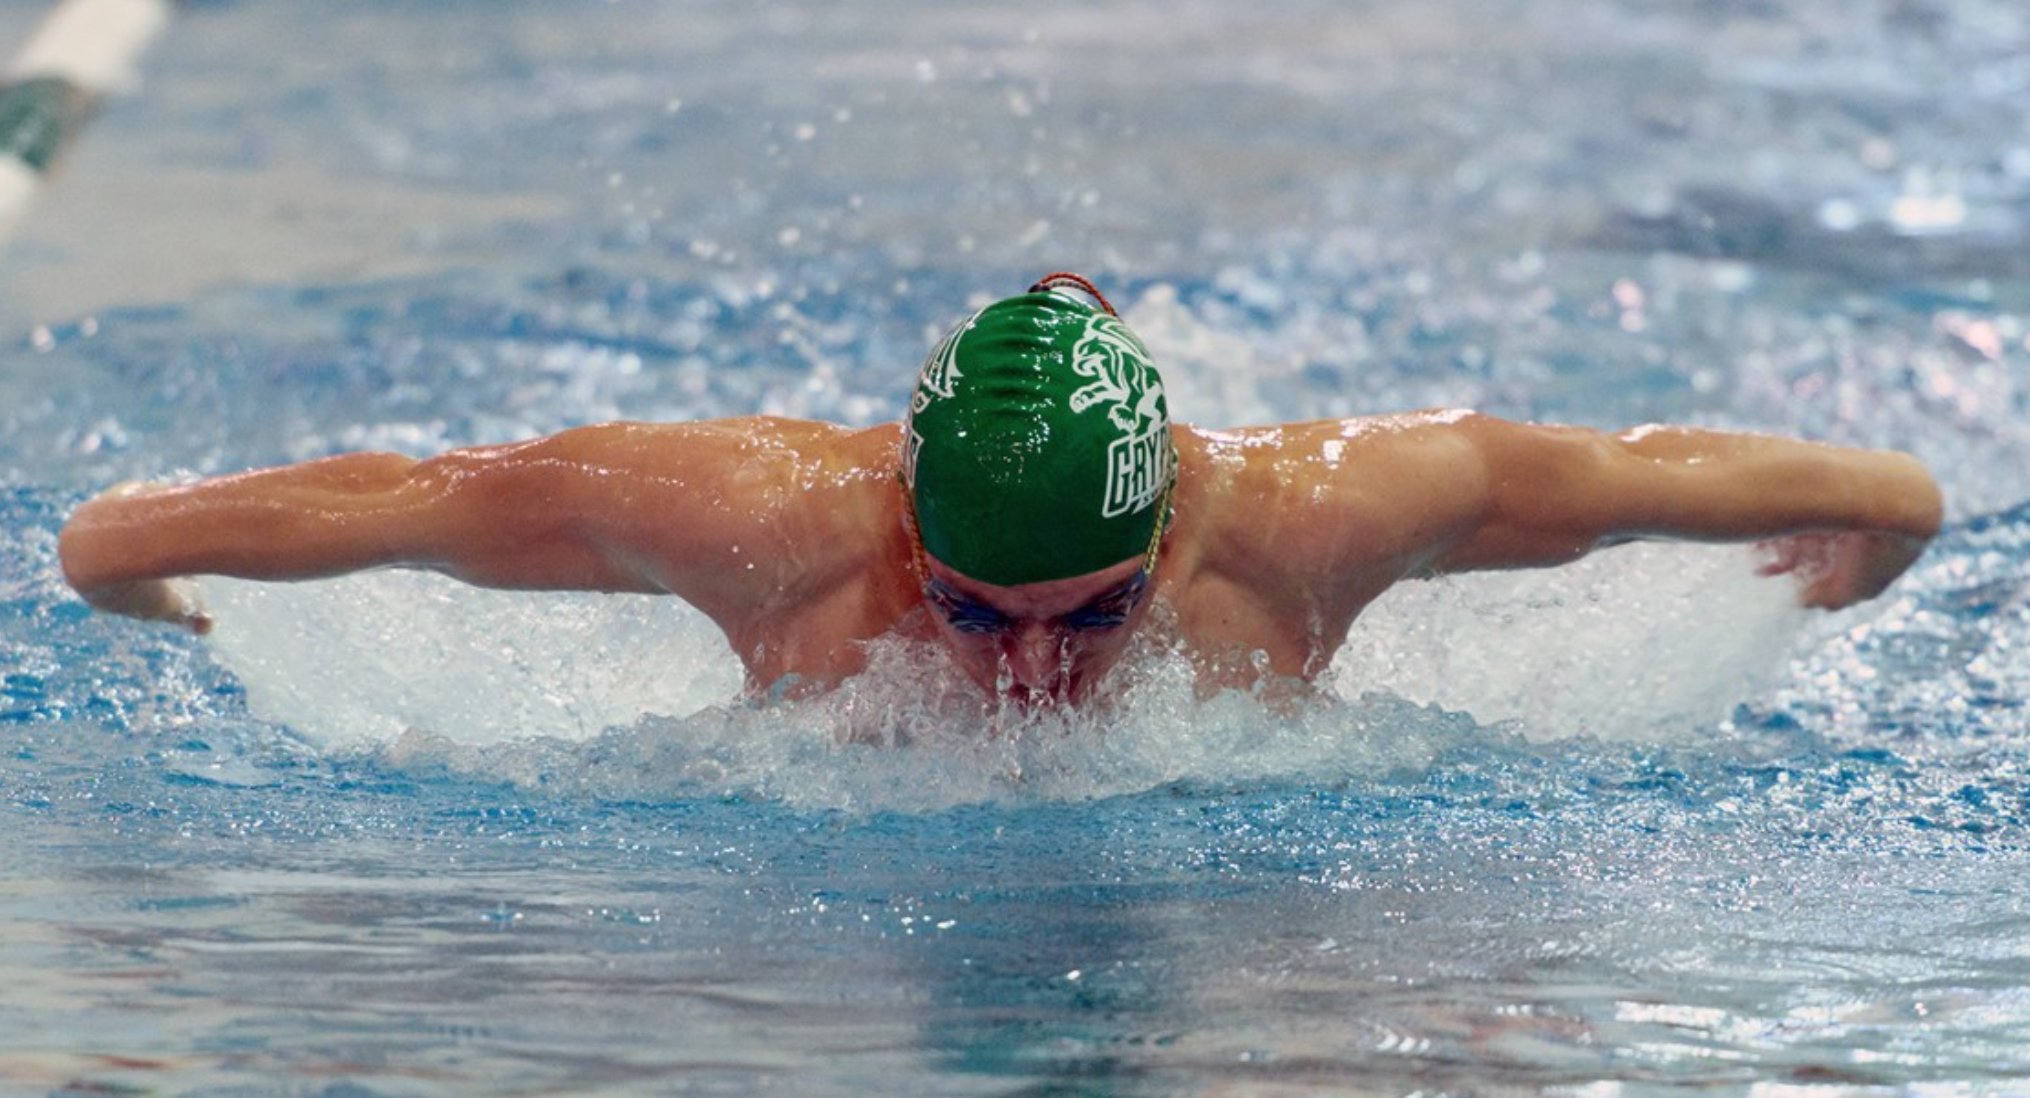 LAWSON TAKES A BREATH WHILE SWIMMING THE 200 MEDLEY AT A MEET   PHOTO BY TONY CORREA